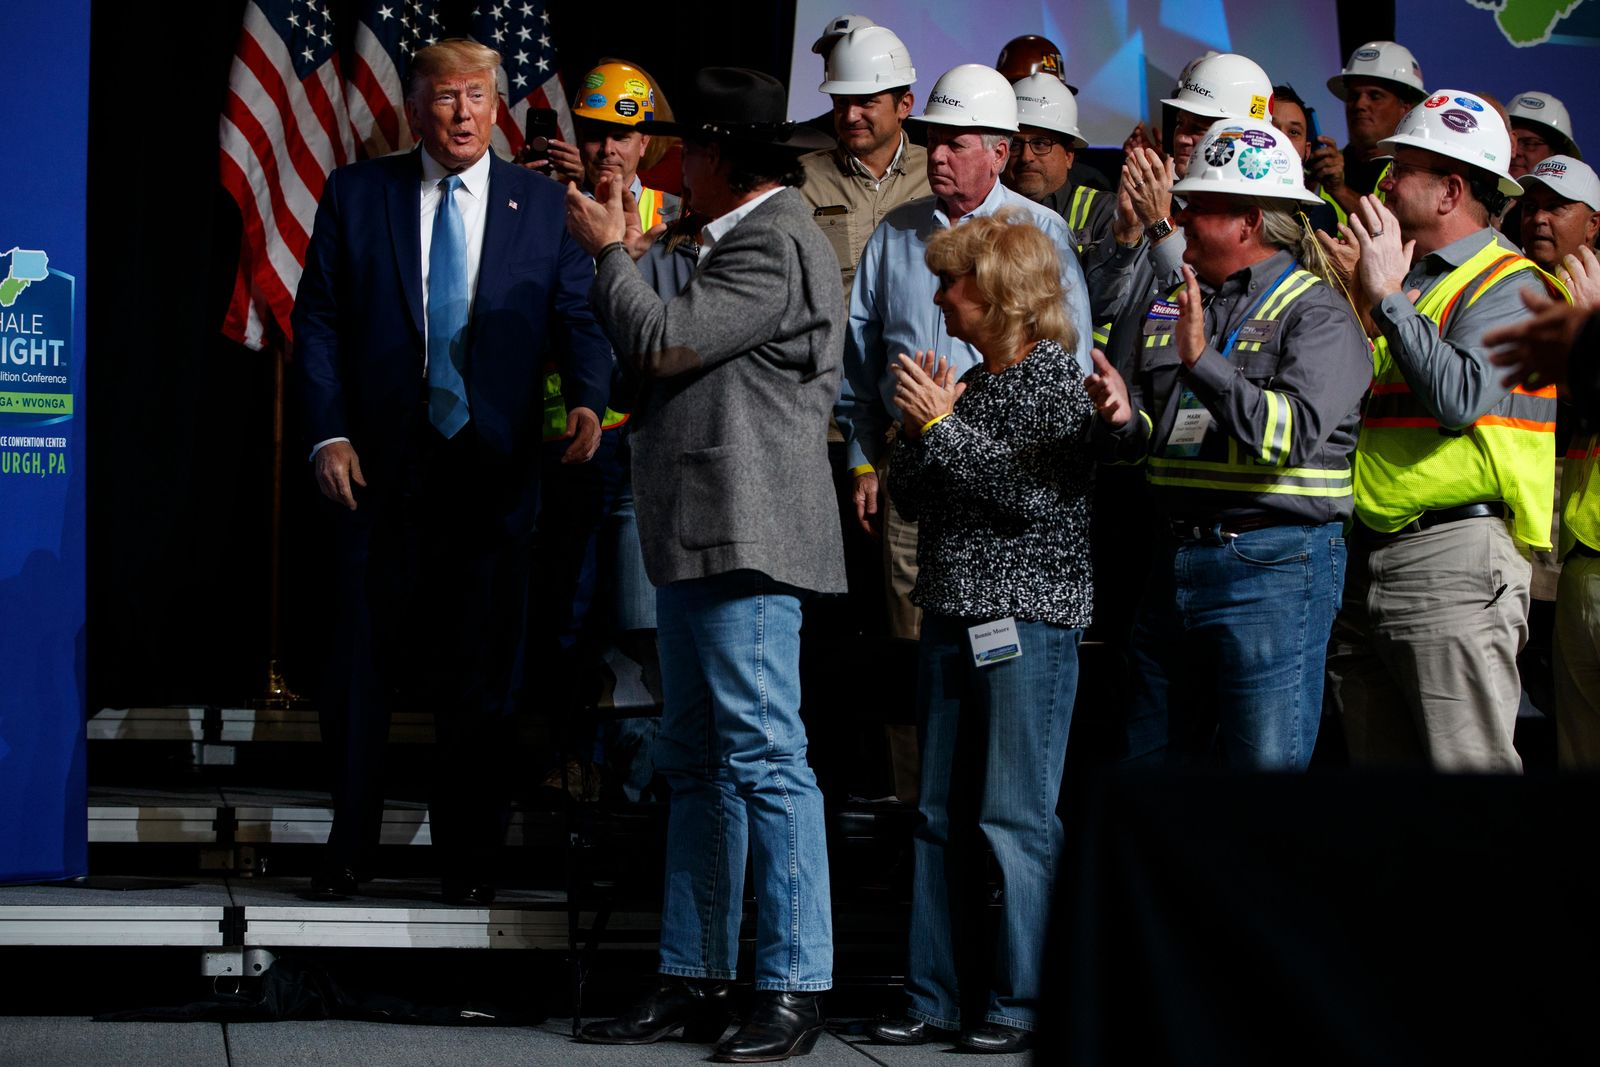 President Donald Trump arrives to speak as the 9th annual Shale Insight Conference at the David L. Lawrence Convention Center, Wednesday, Oct. 23, 2019, in Pittsburgh. (AP Photo/Evan Vucci)